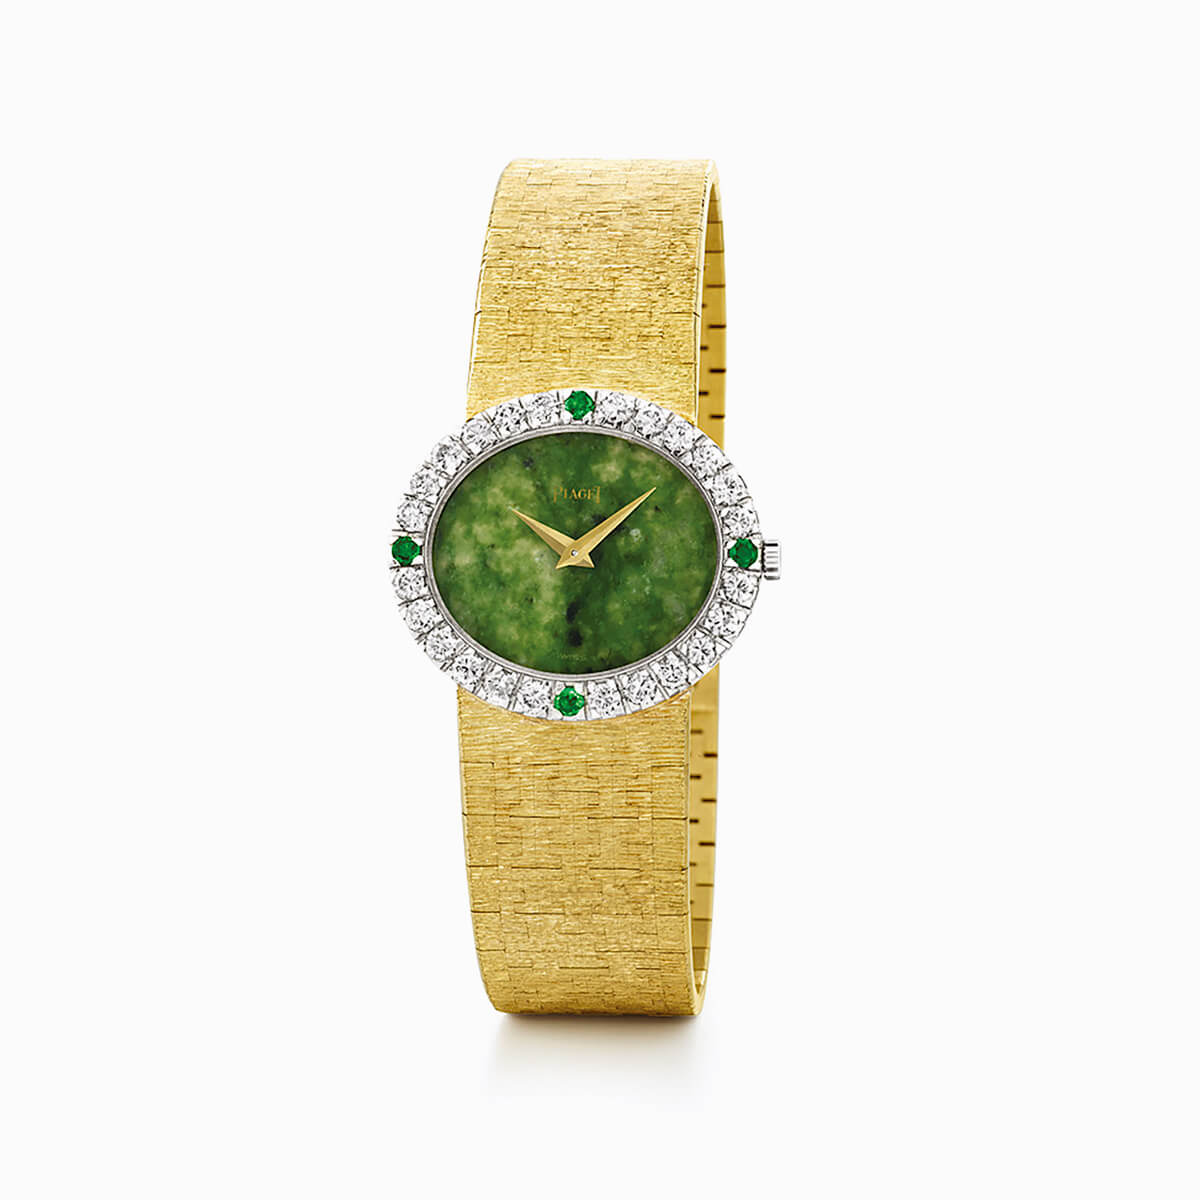 Jackie Kennedys Piaget Uhr